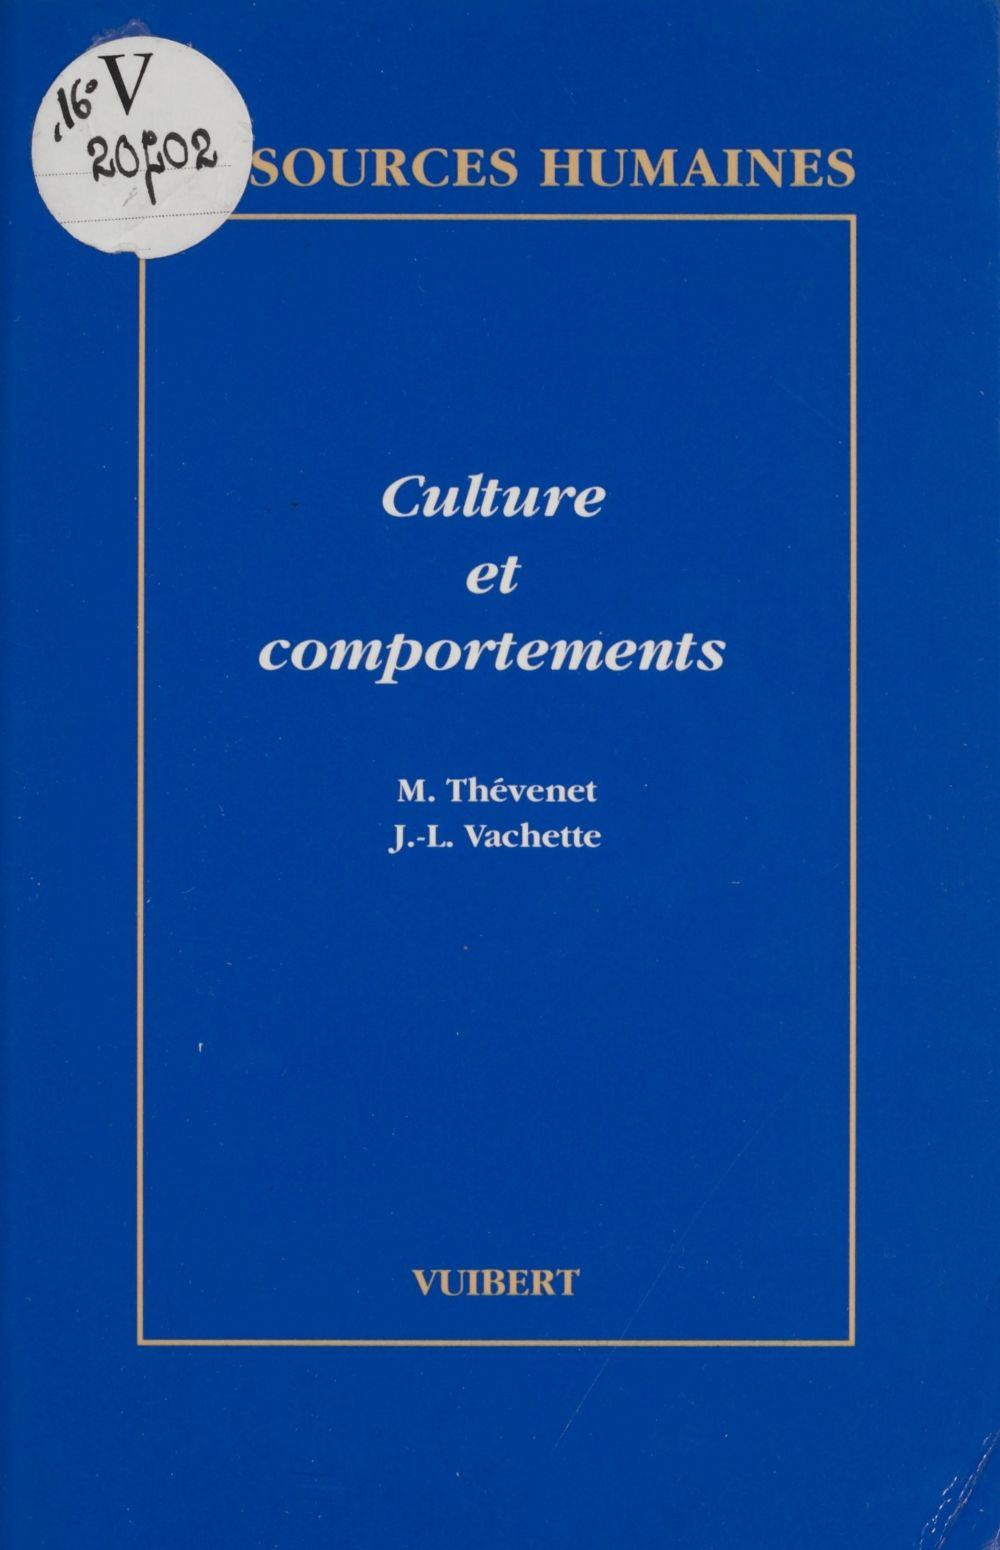 Culture et comportements